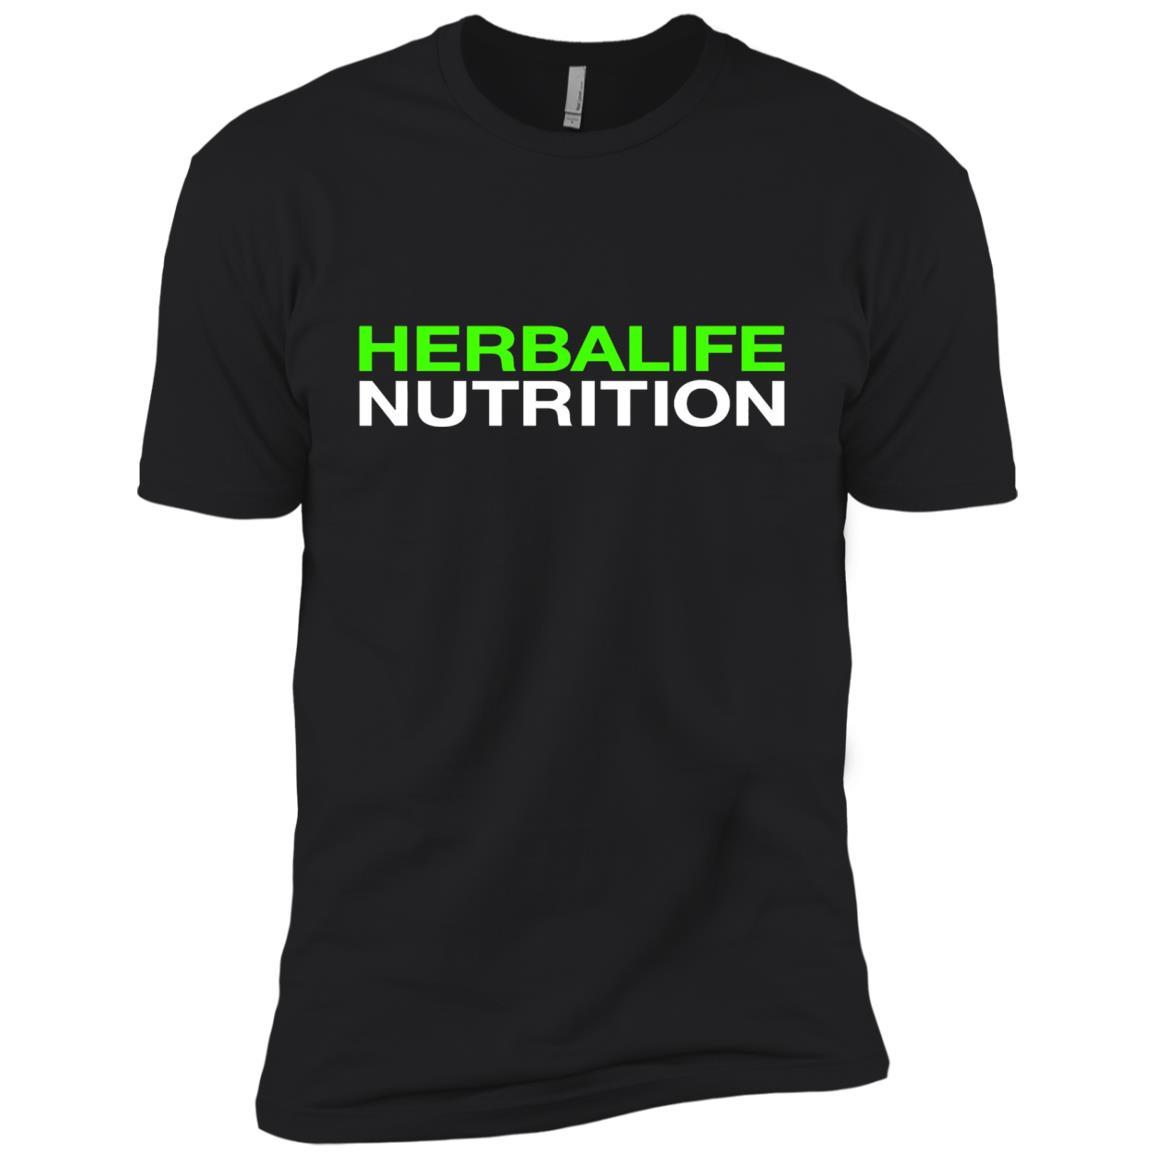 HERBALIFE NUTRITION - Short Sleeve T-Shirt Style / Color / Size